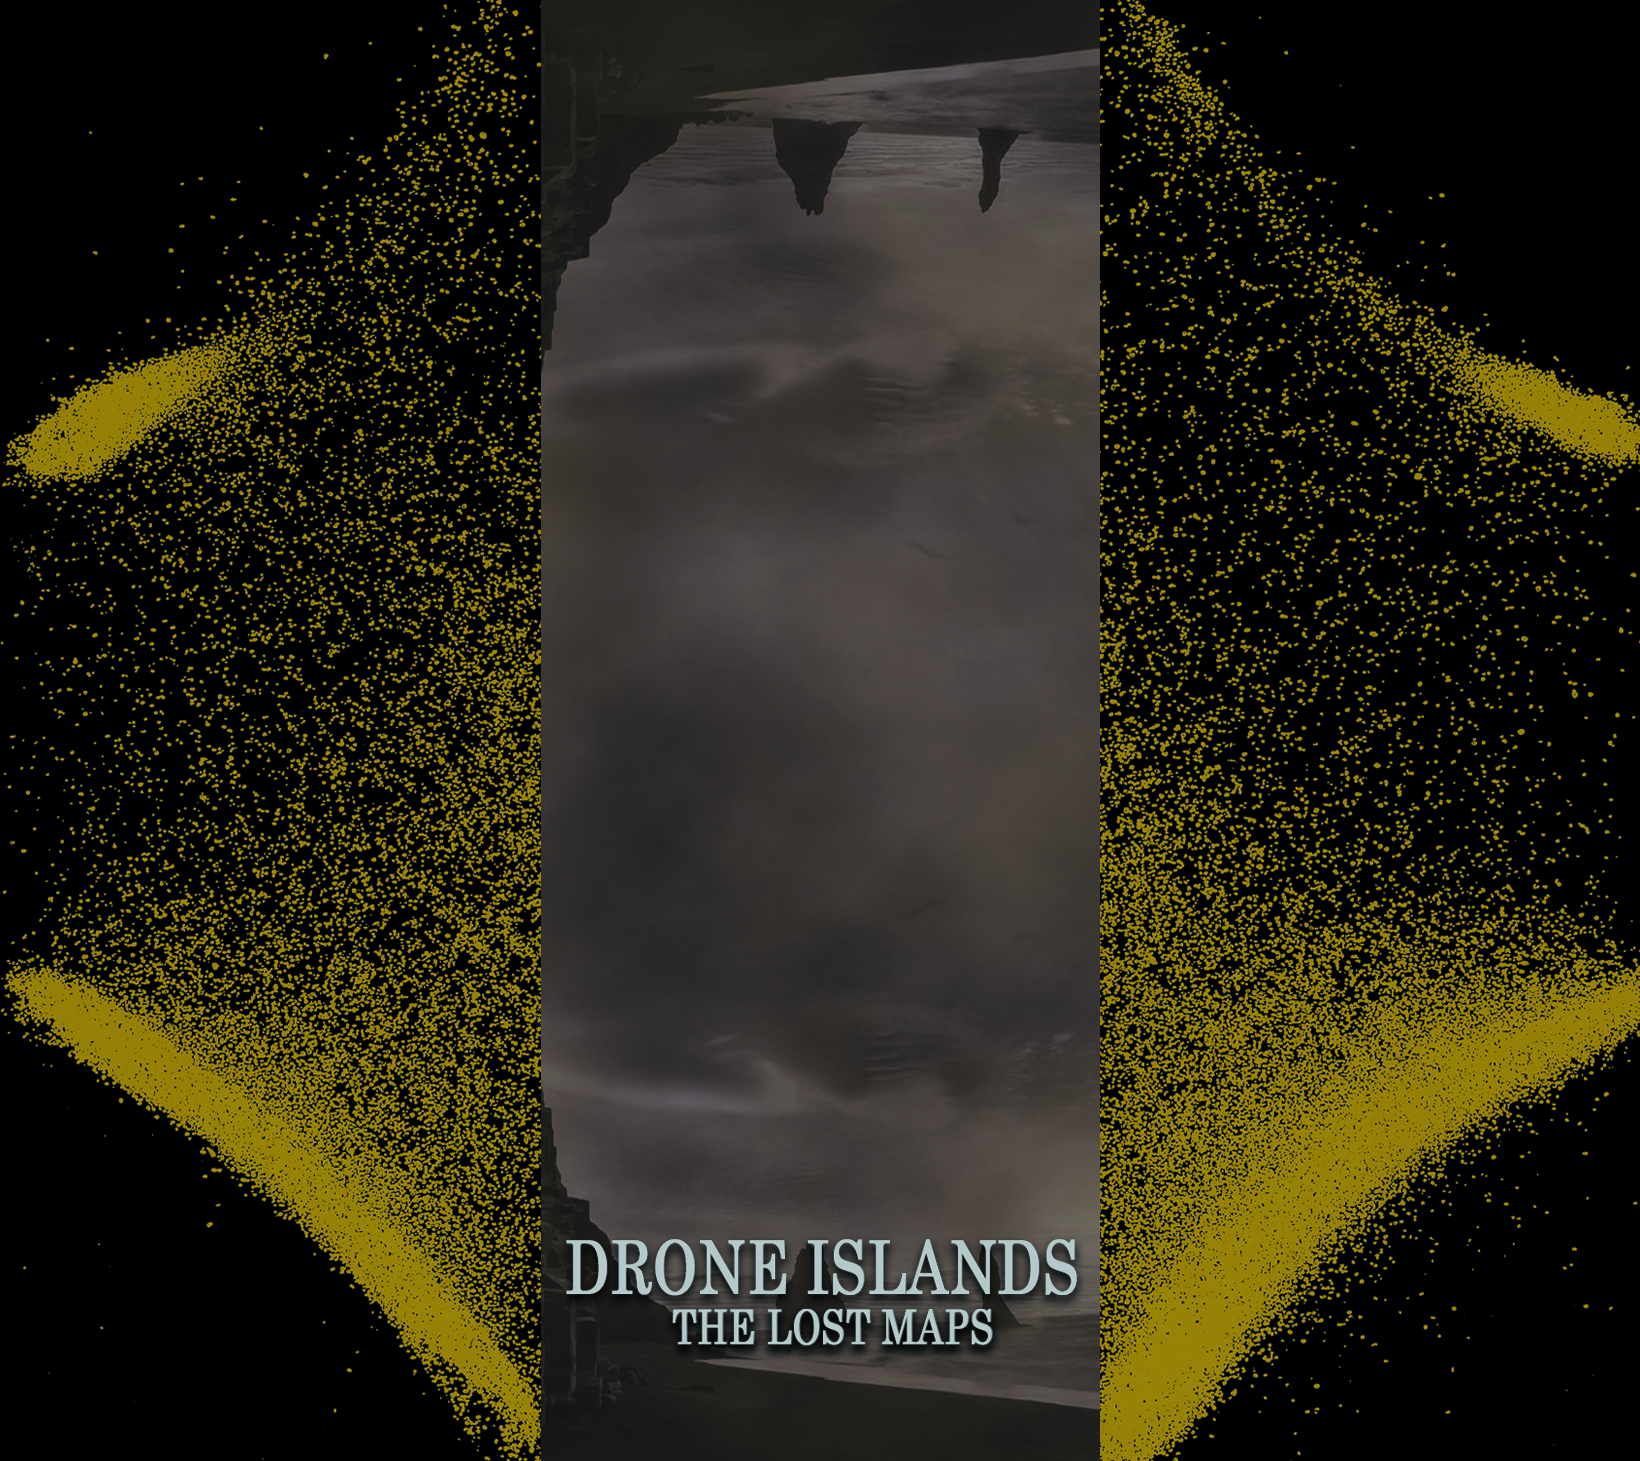 drone islands - lost maps - front